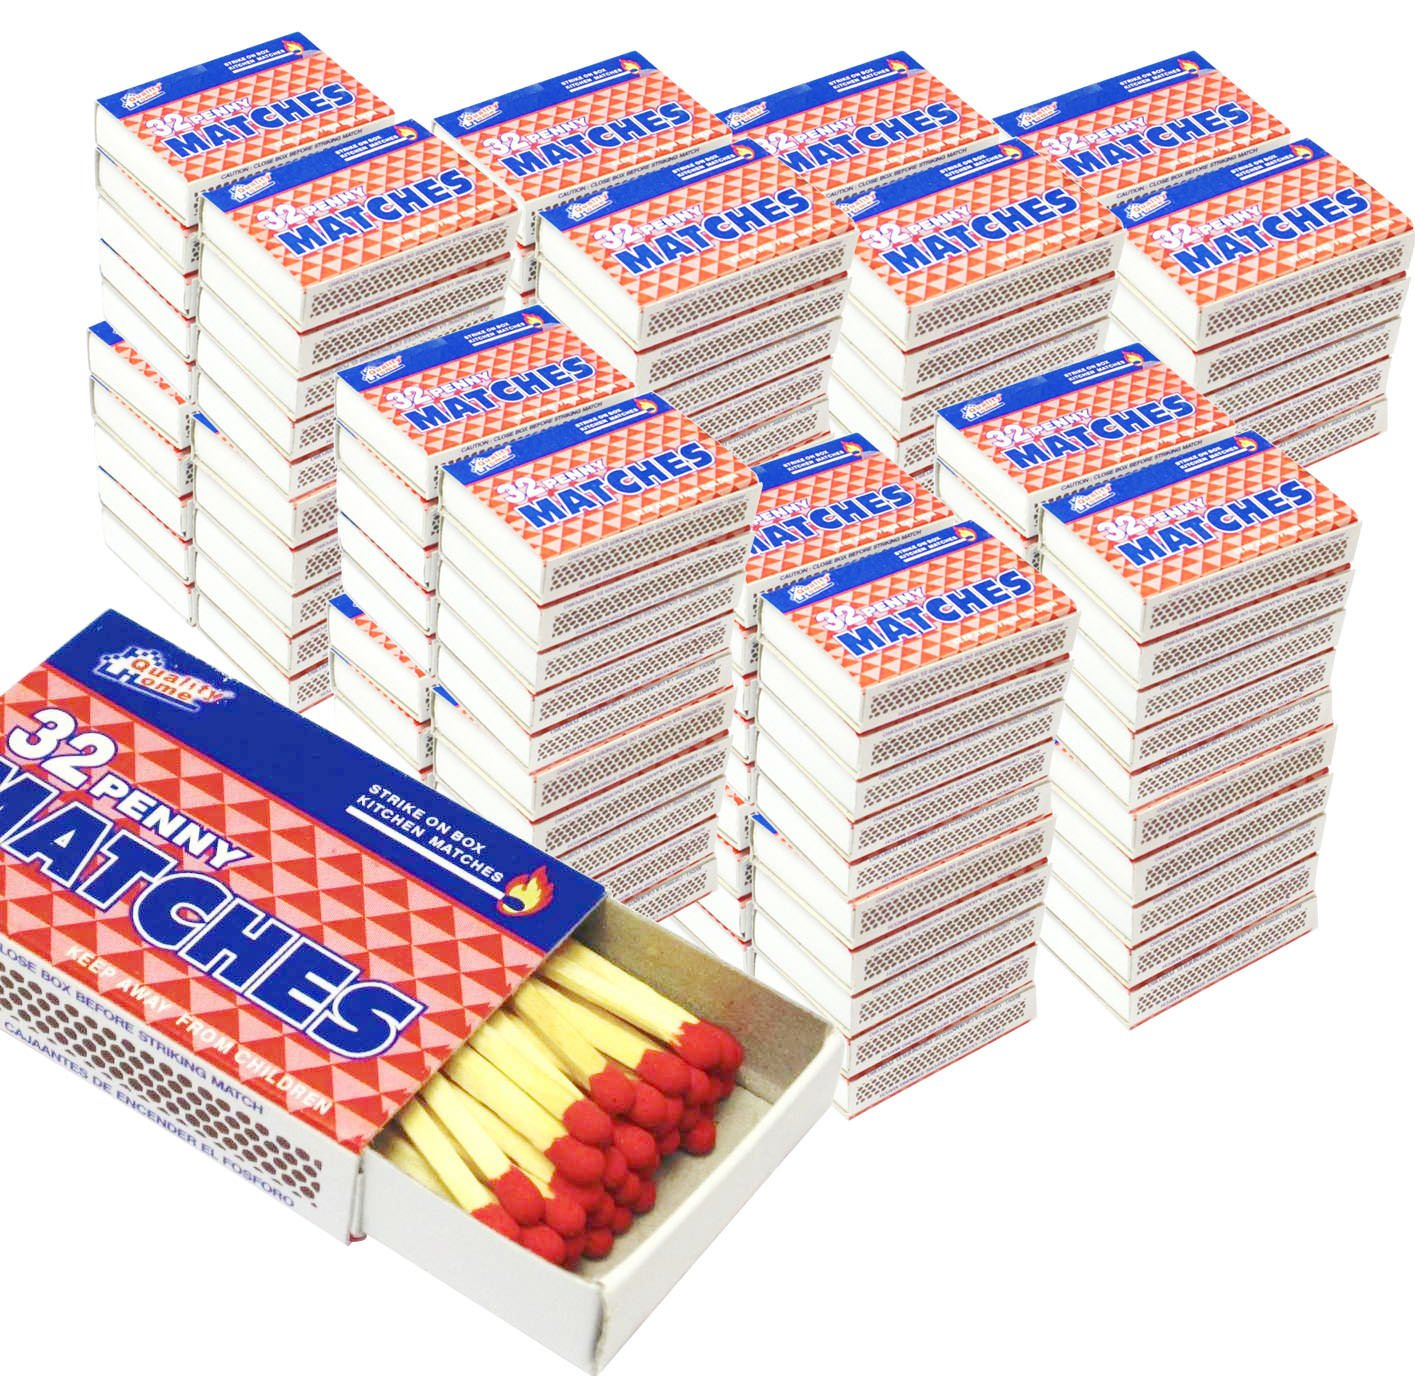 1000 Packs Matches 32 count Strike on Box Kitchen Camping Fire Starter Lighter by MegaDeal